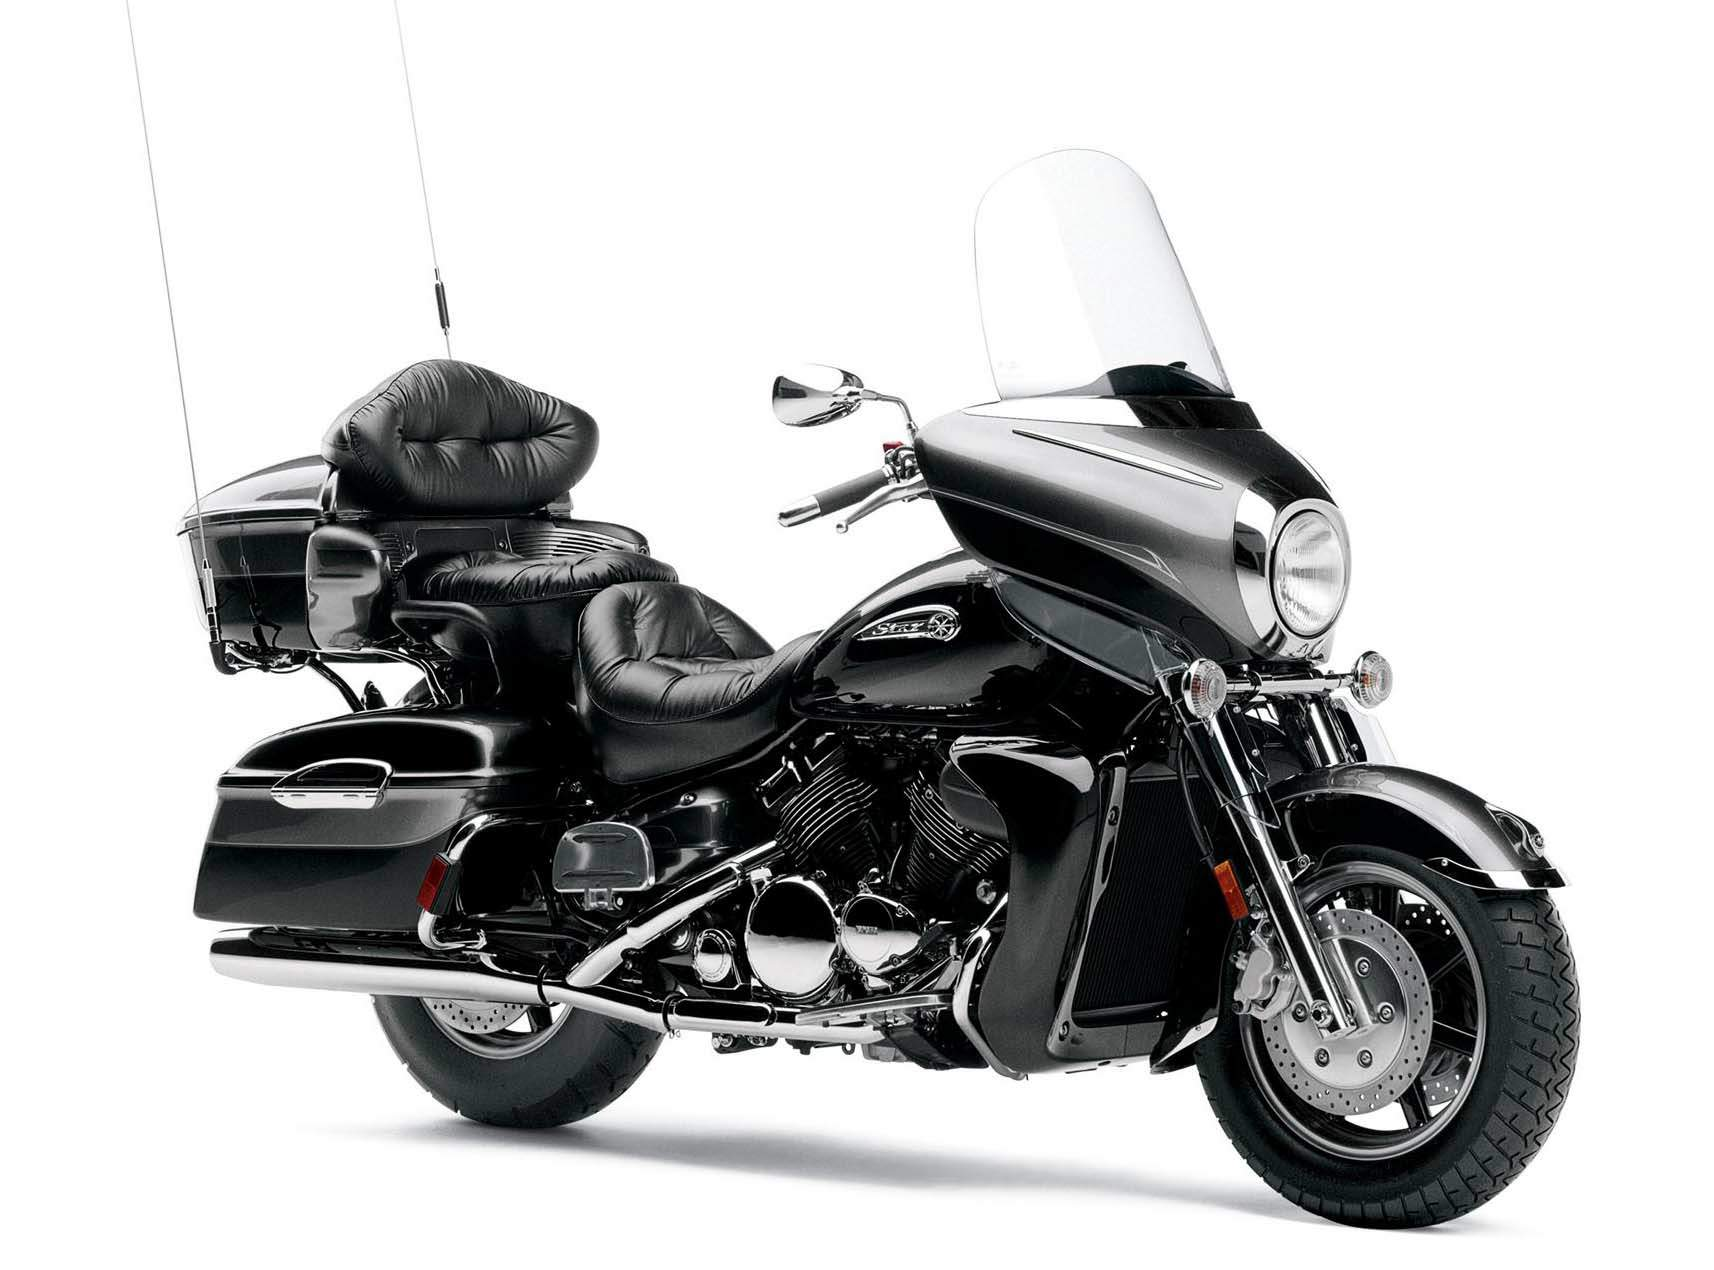 Мотоцикл Yamaha XVZ 1300 Royal Star Venture S 2008